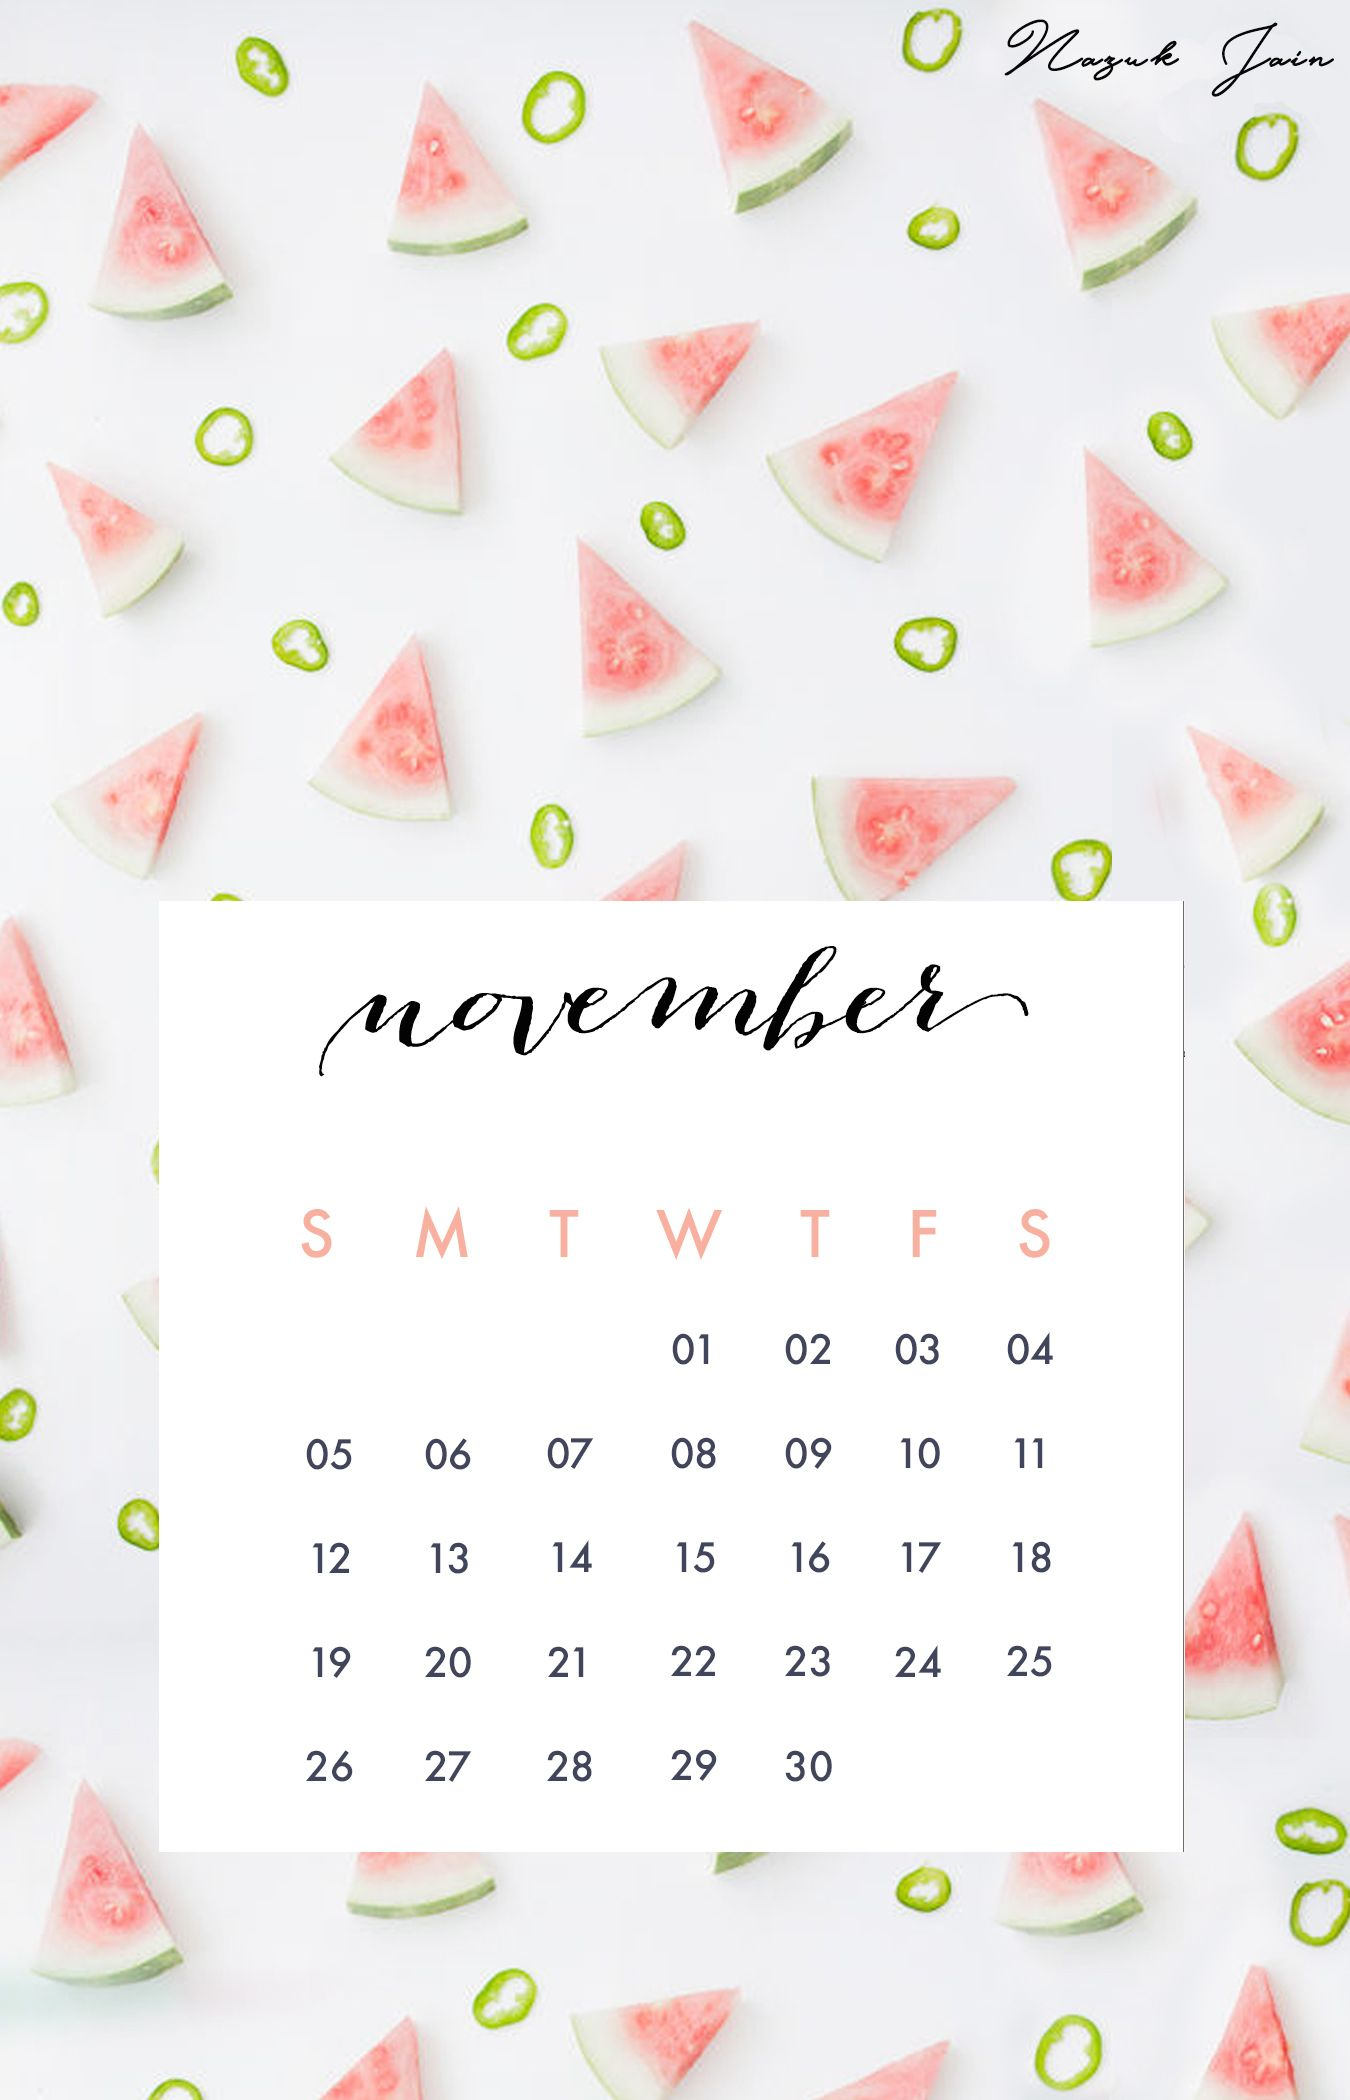 november free calendar printables 2017 by nazuk jain